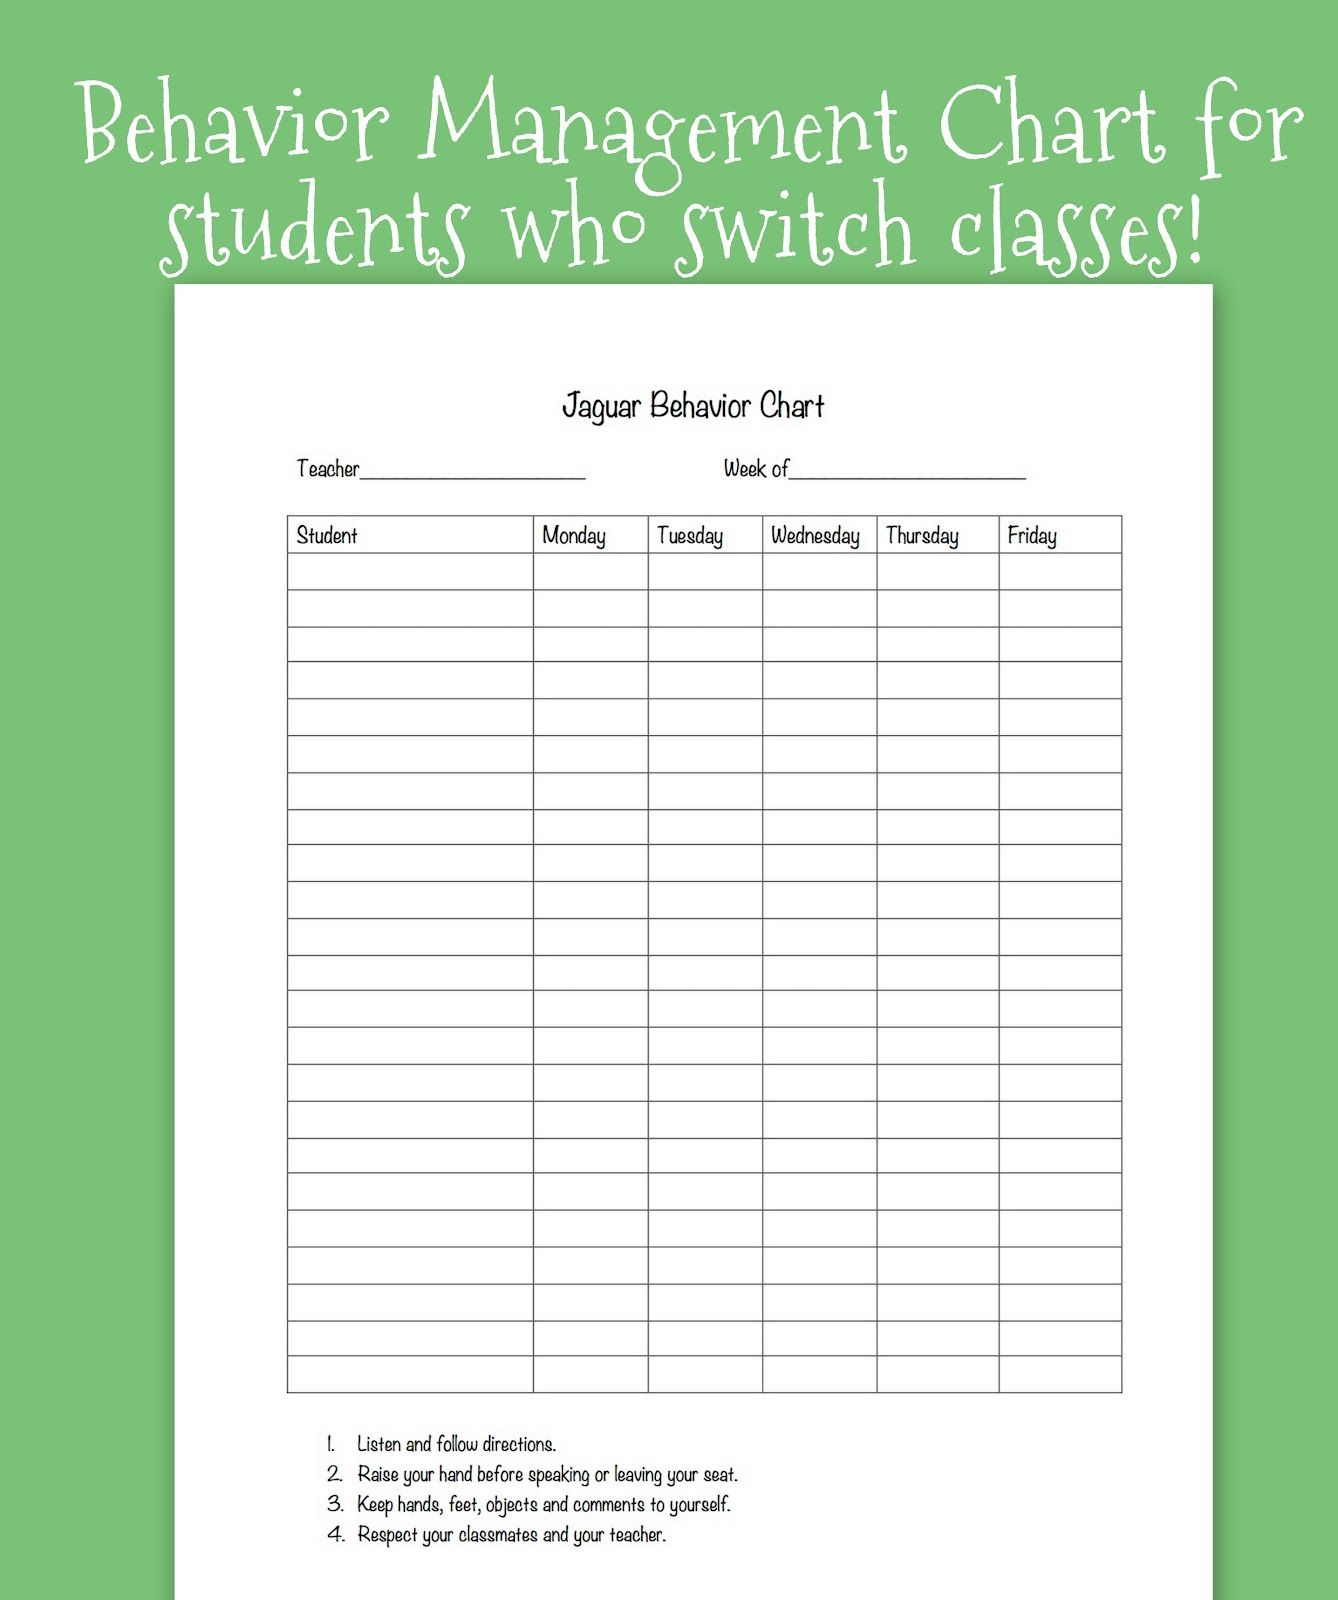 This Is A Great Template To Be Used By Teachers To Adapt